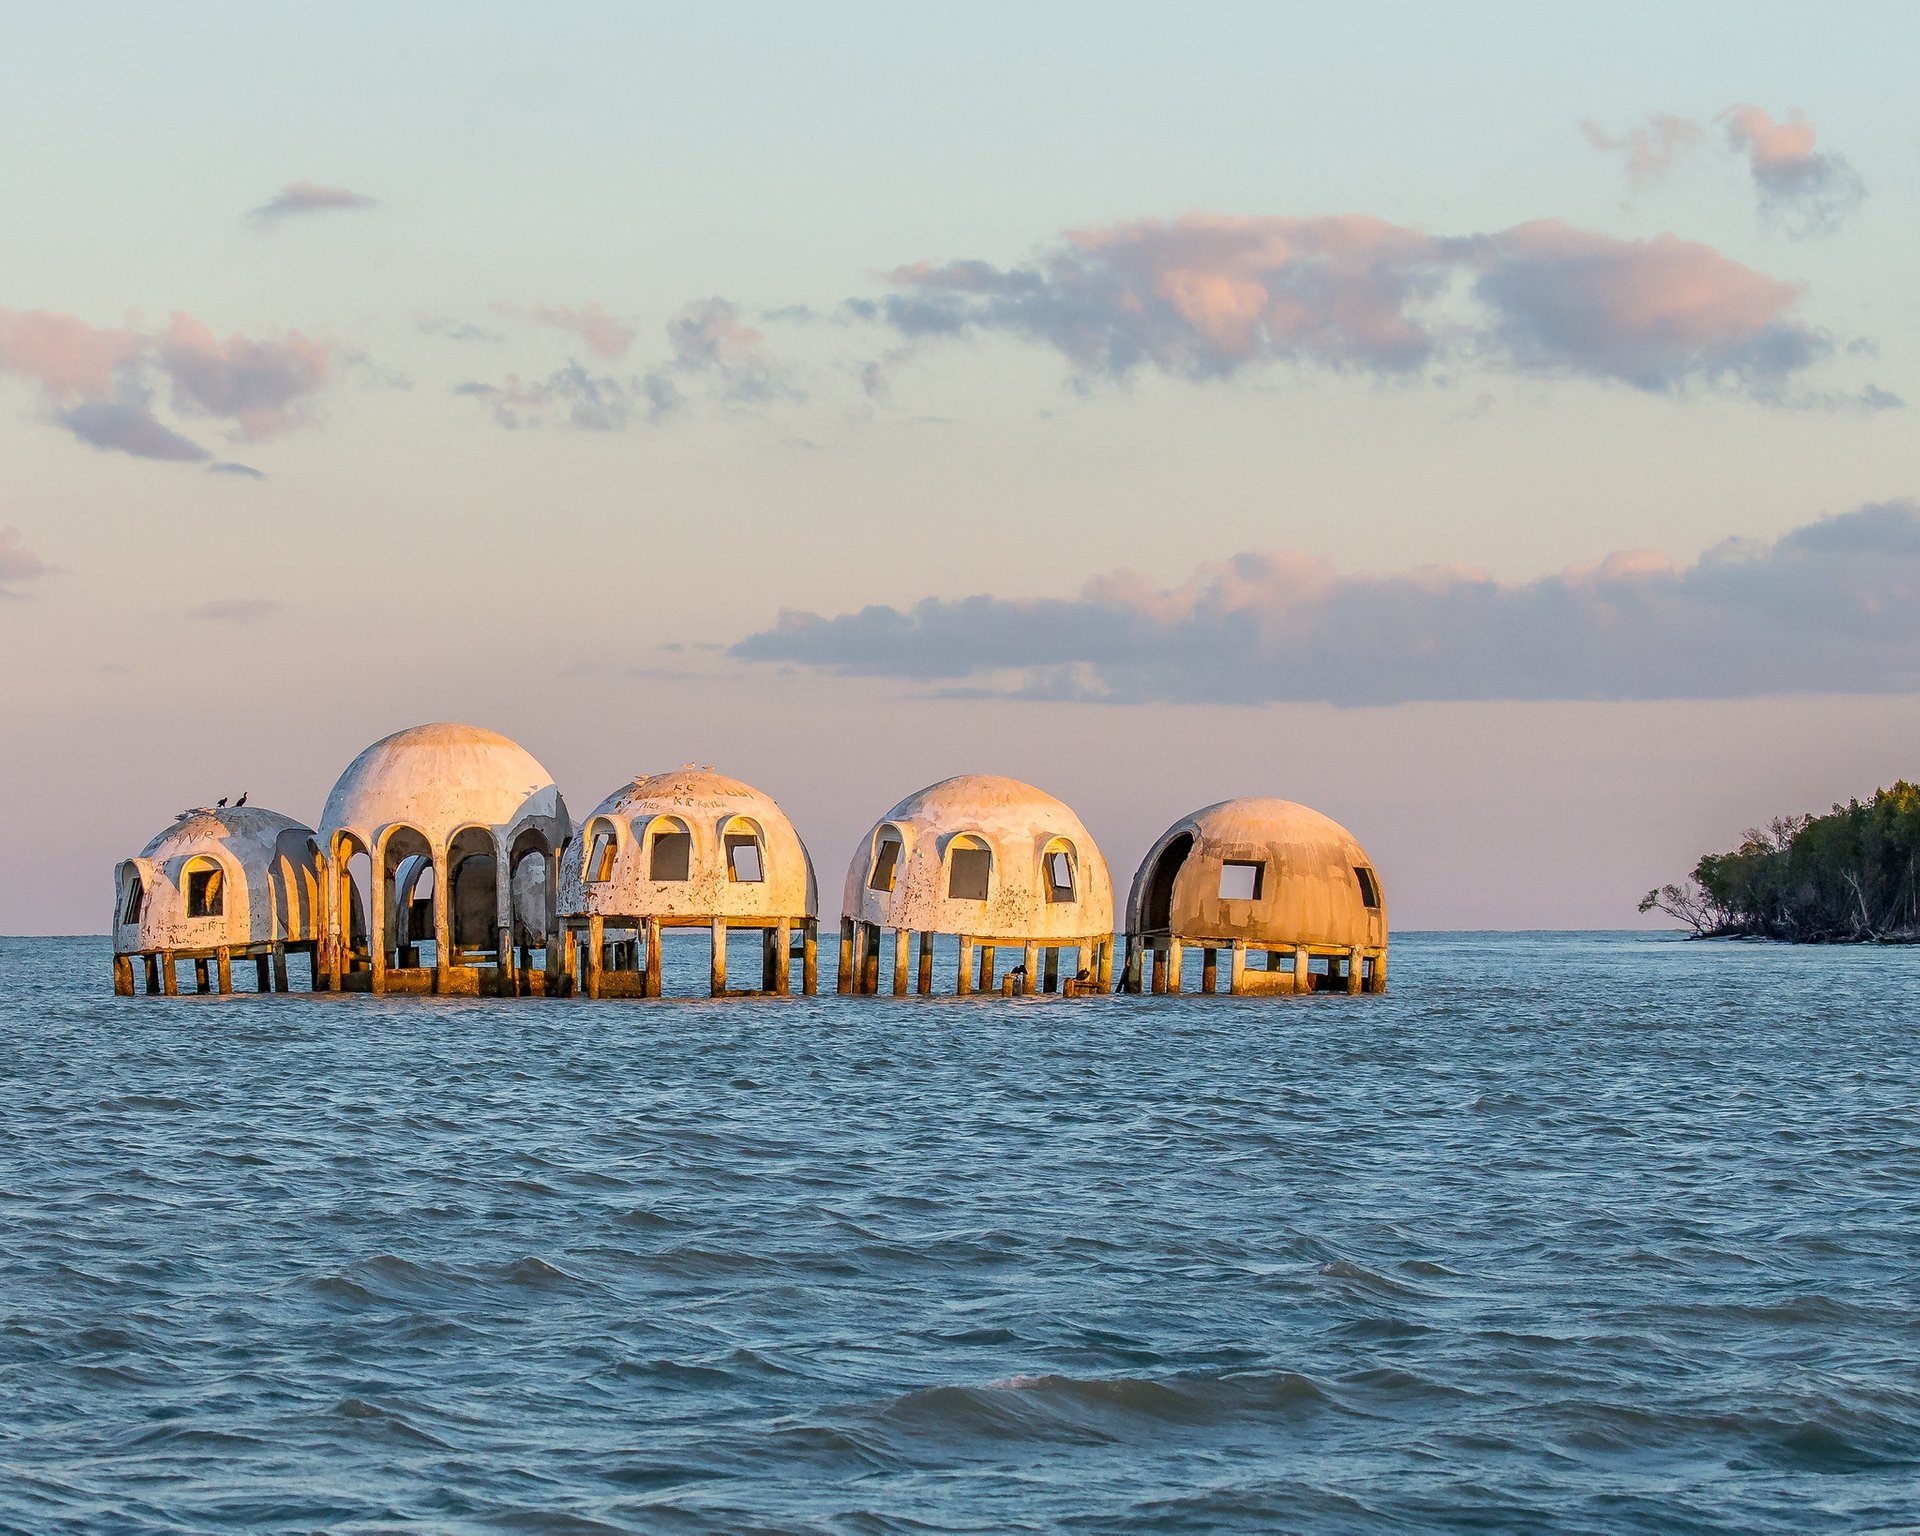 Marco Island and Ten Thousand Islands in Florida 2020 - Best Time